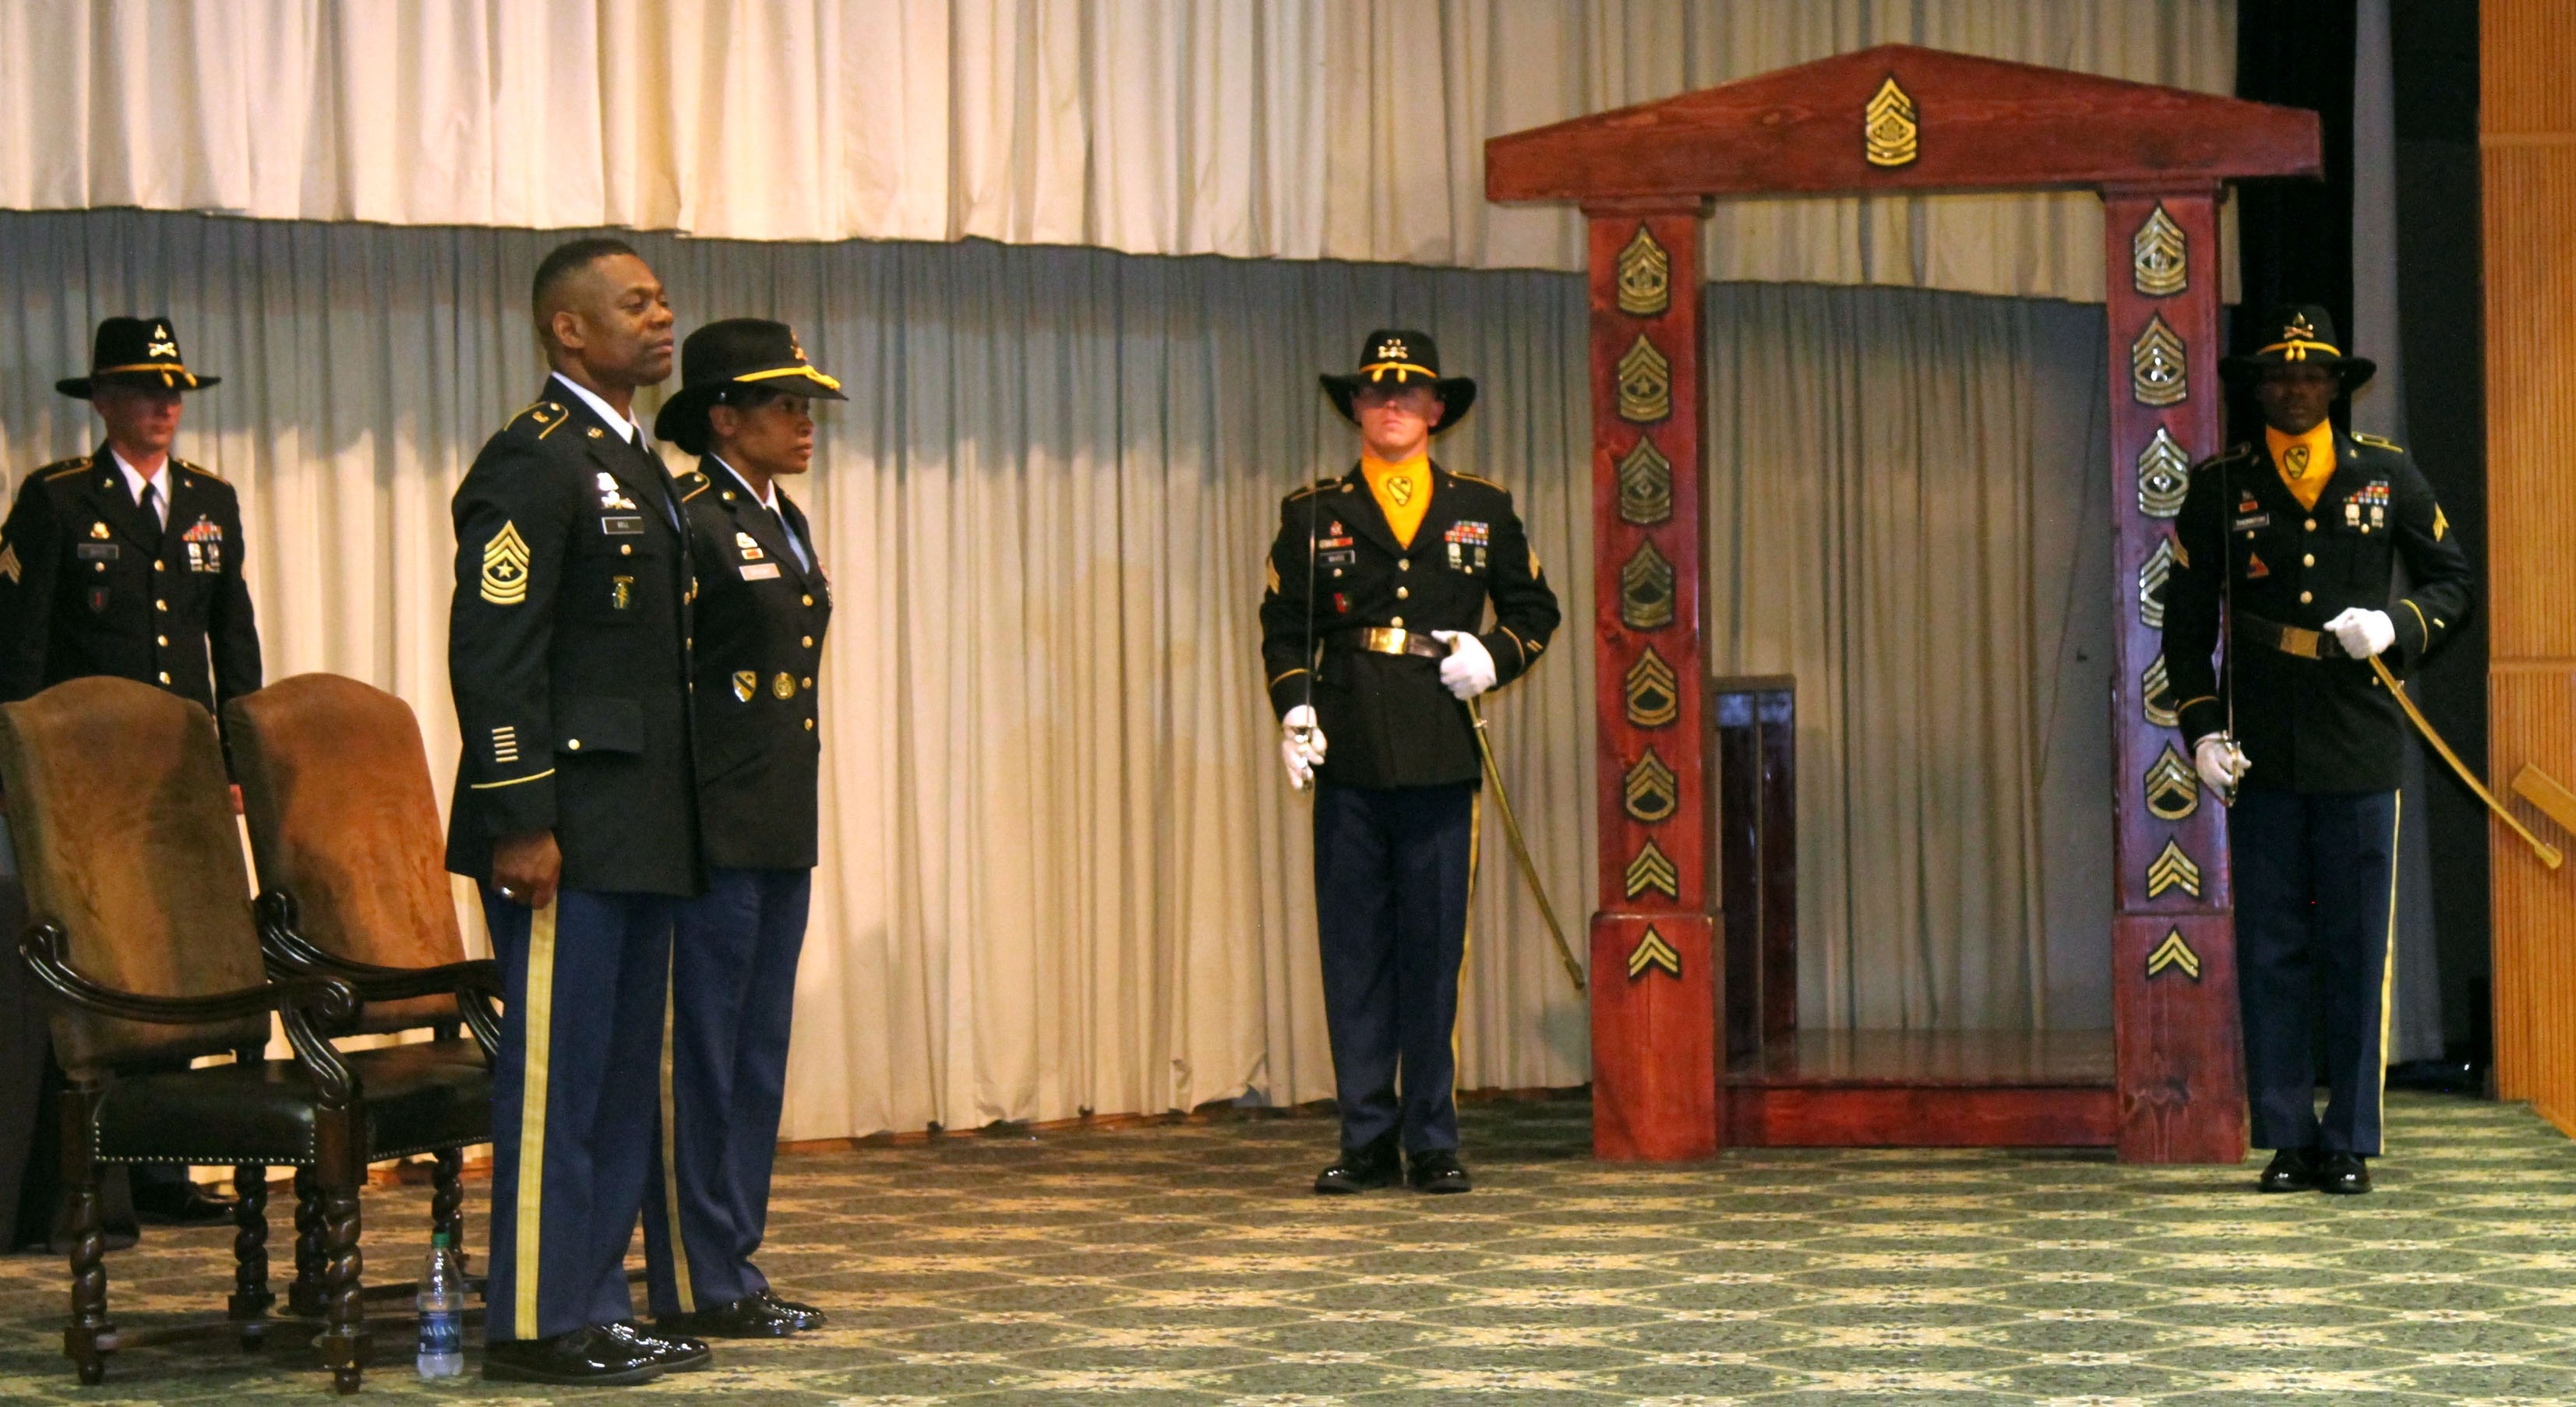 Wagonmasters Conduct Nco Induction Ceremony Article